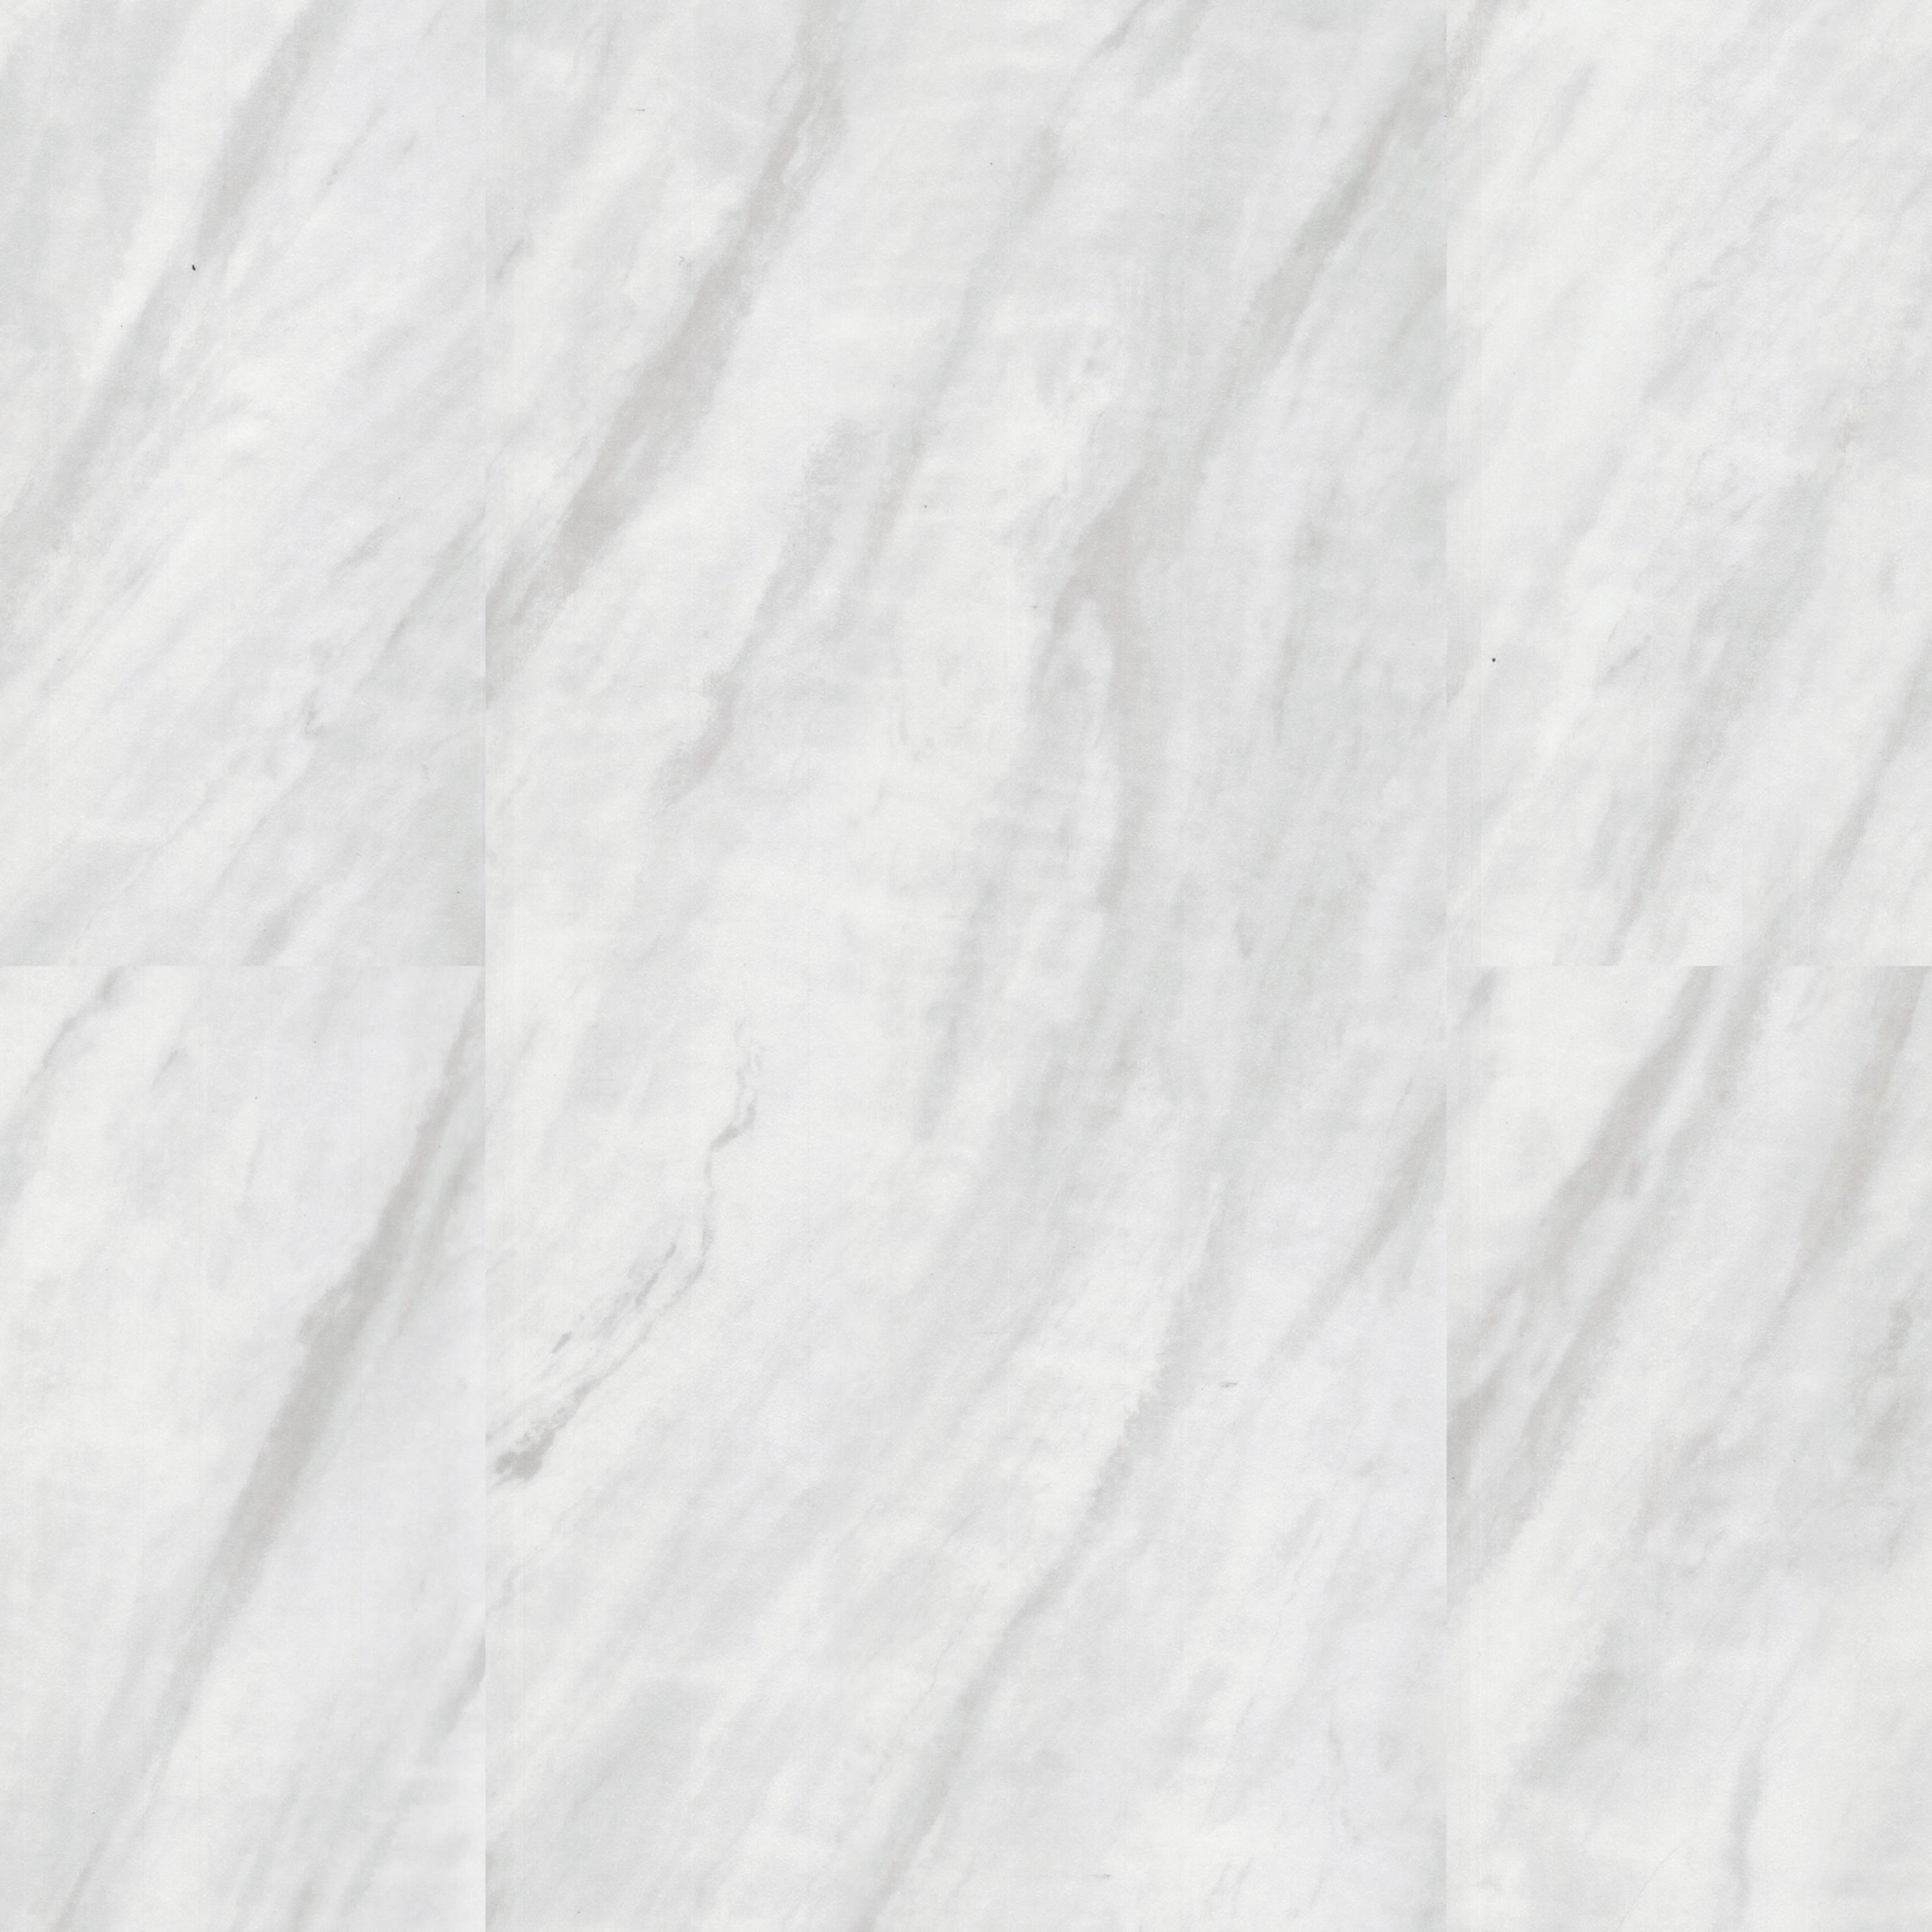 Moduleo Vision Light Grey Marble Waterproof Vinyl Flooring Marble Countertops Carrera Marble Carrara